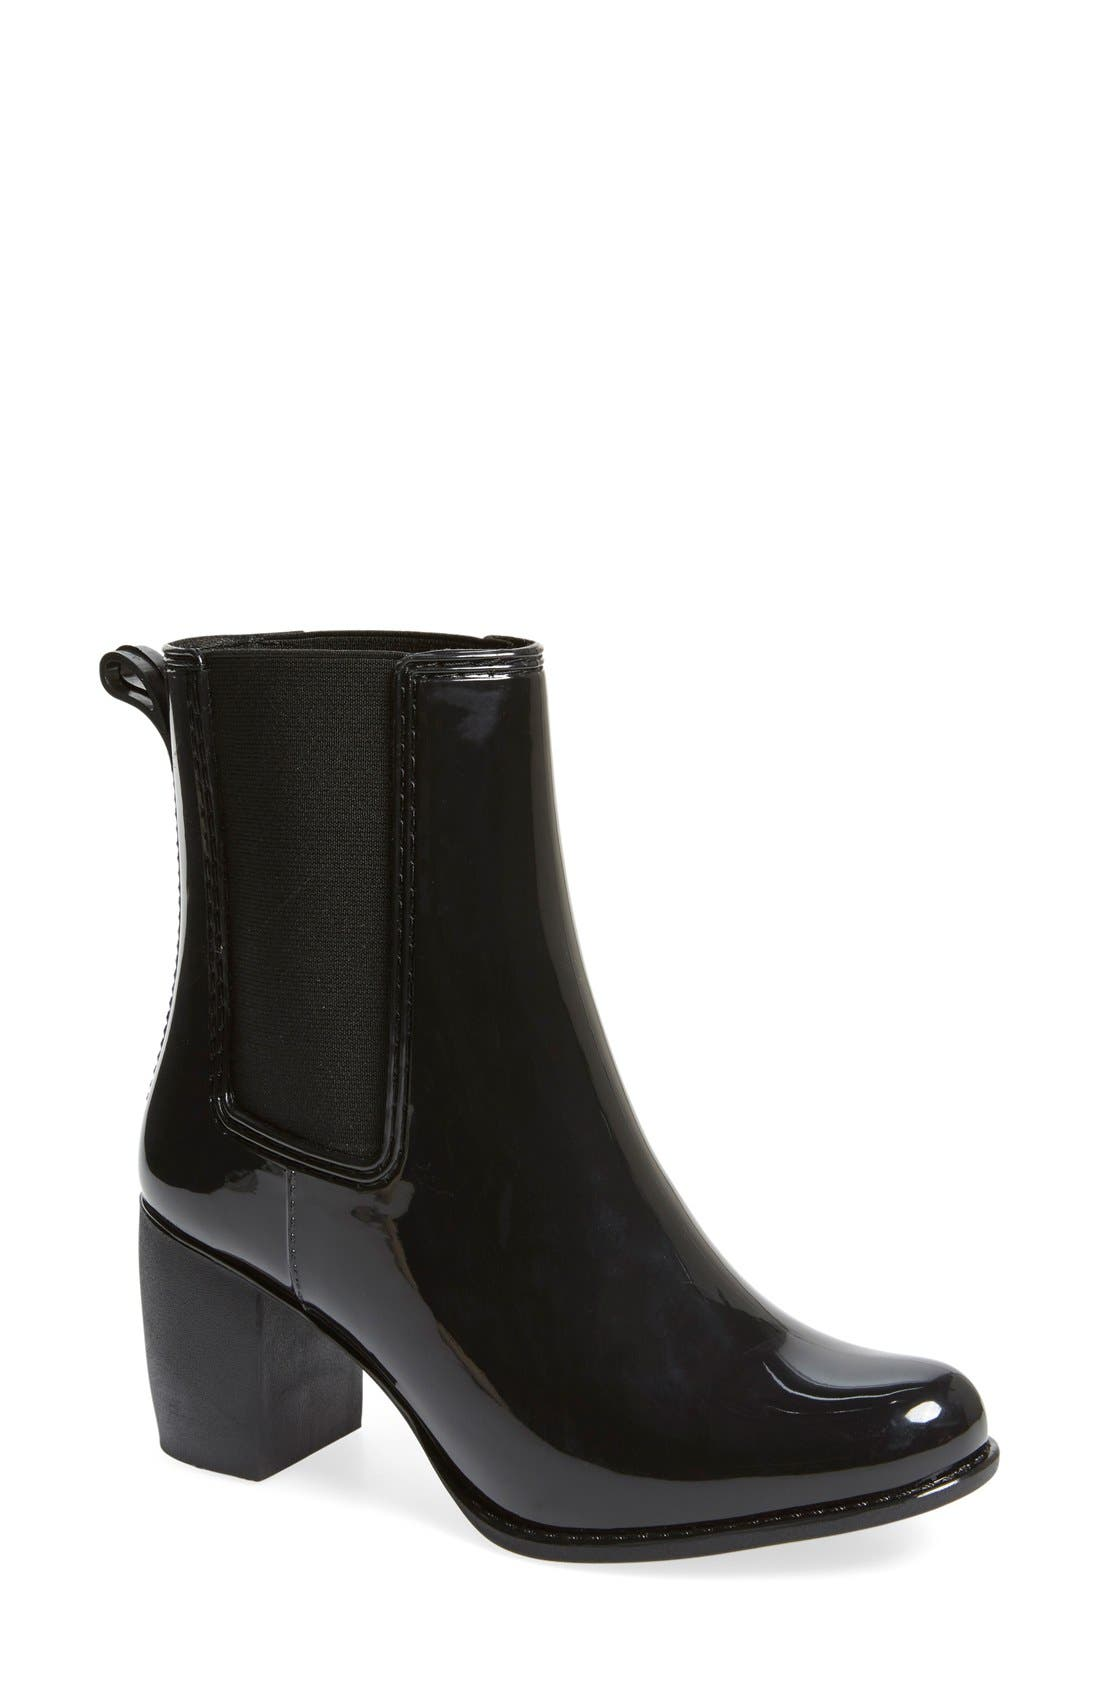 Alternate Image 1 Selected - Jeffrey Campbell 'Clima' Chelsea Rain Boot (Women)